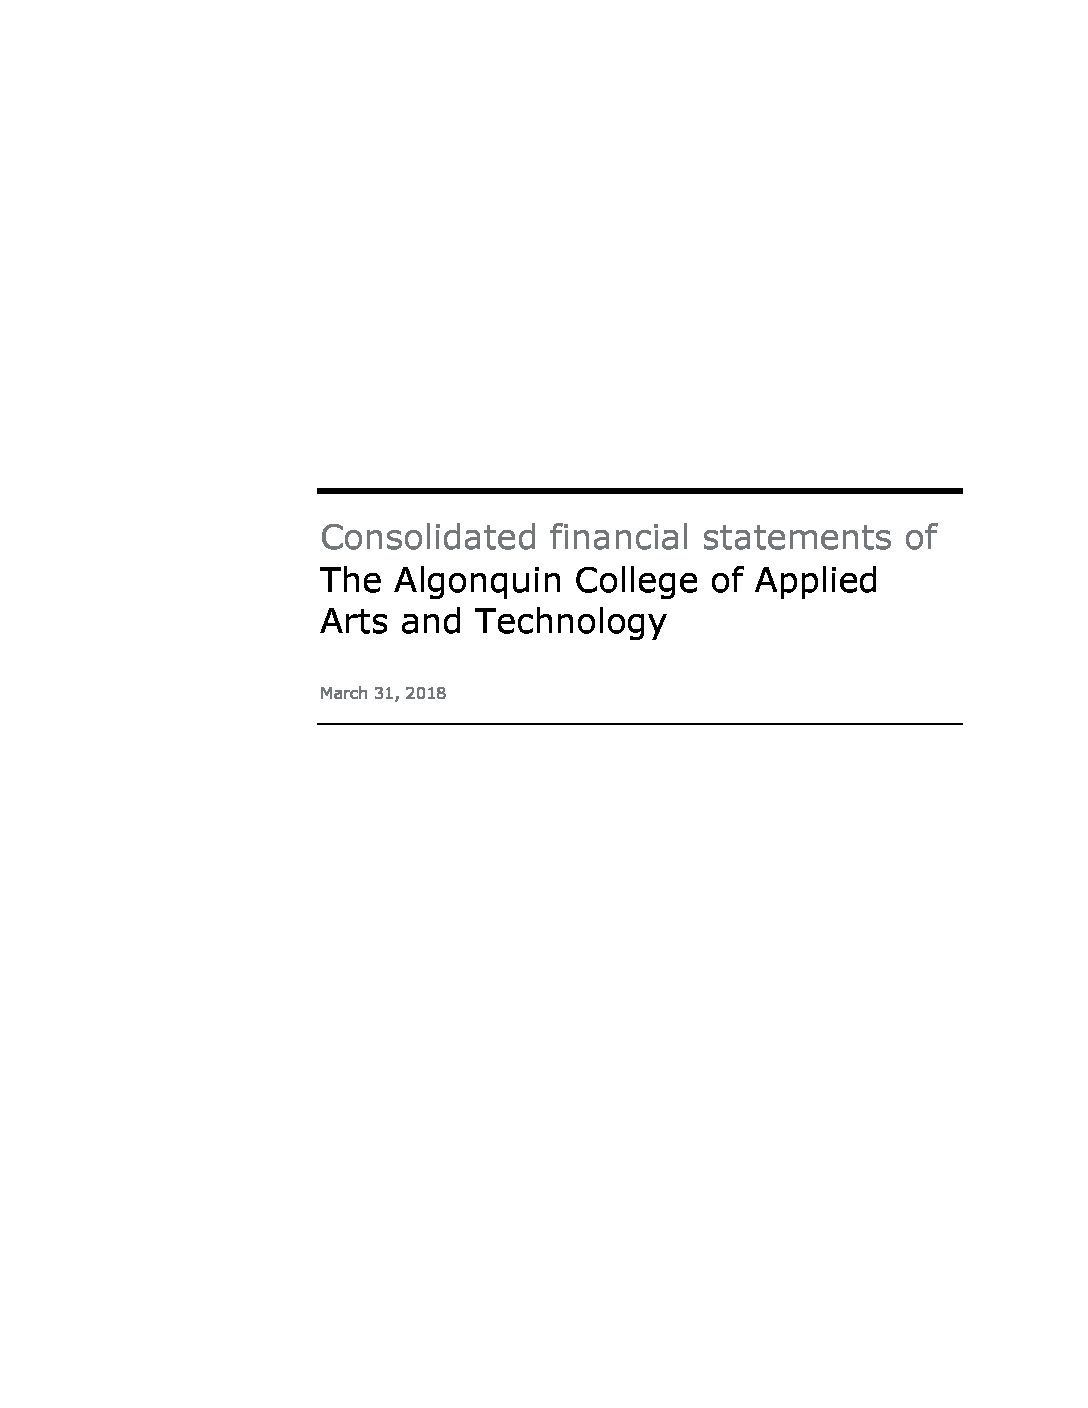 Algonquin College Audited Financial Statements March 31 2018 Corporate Reports